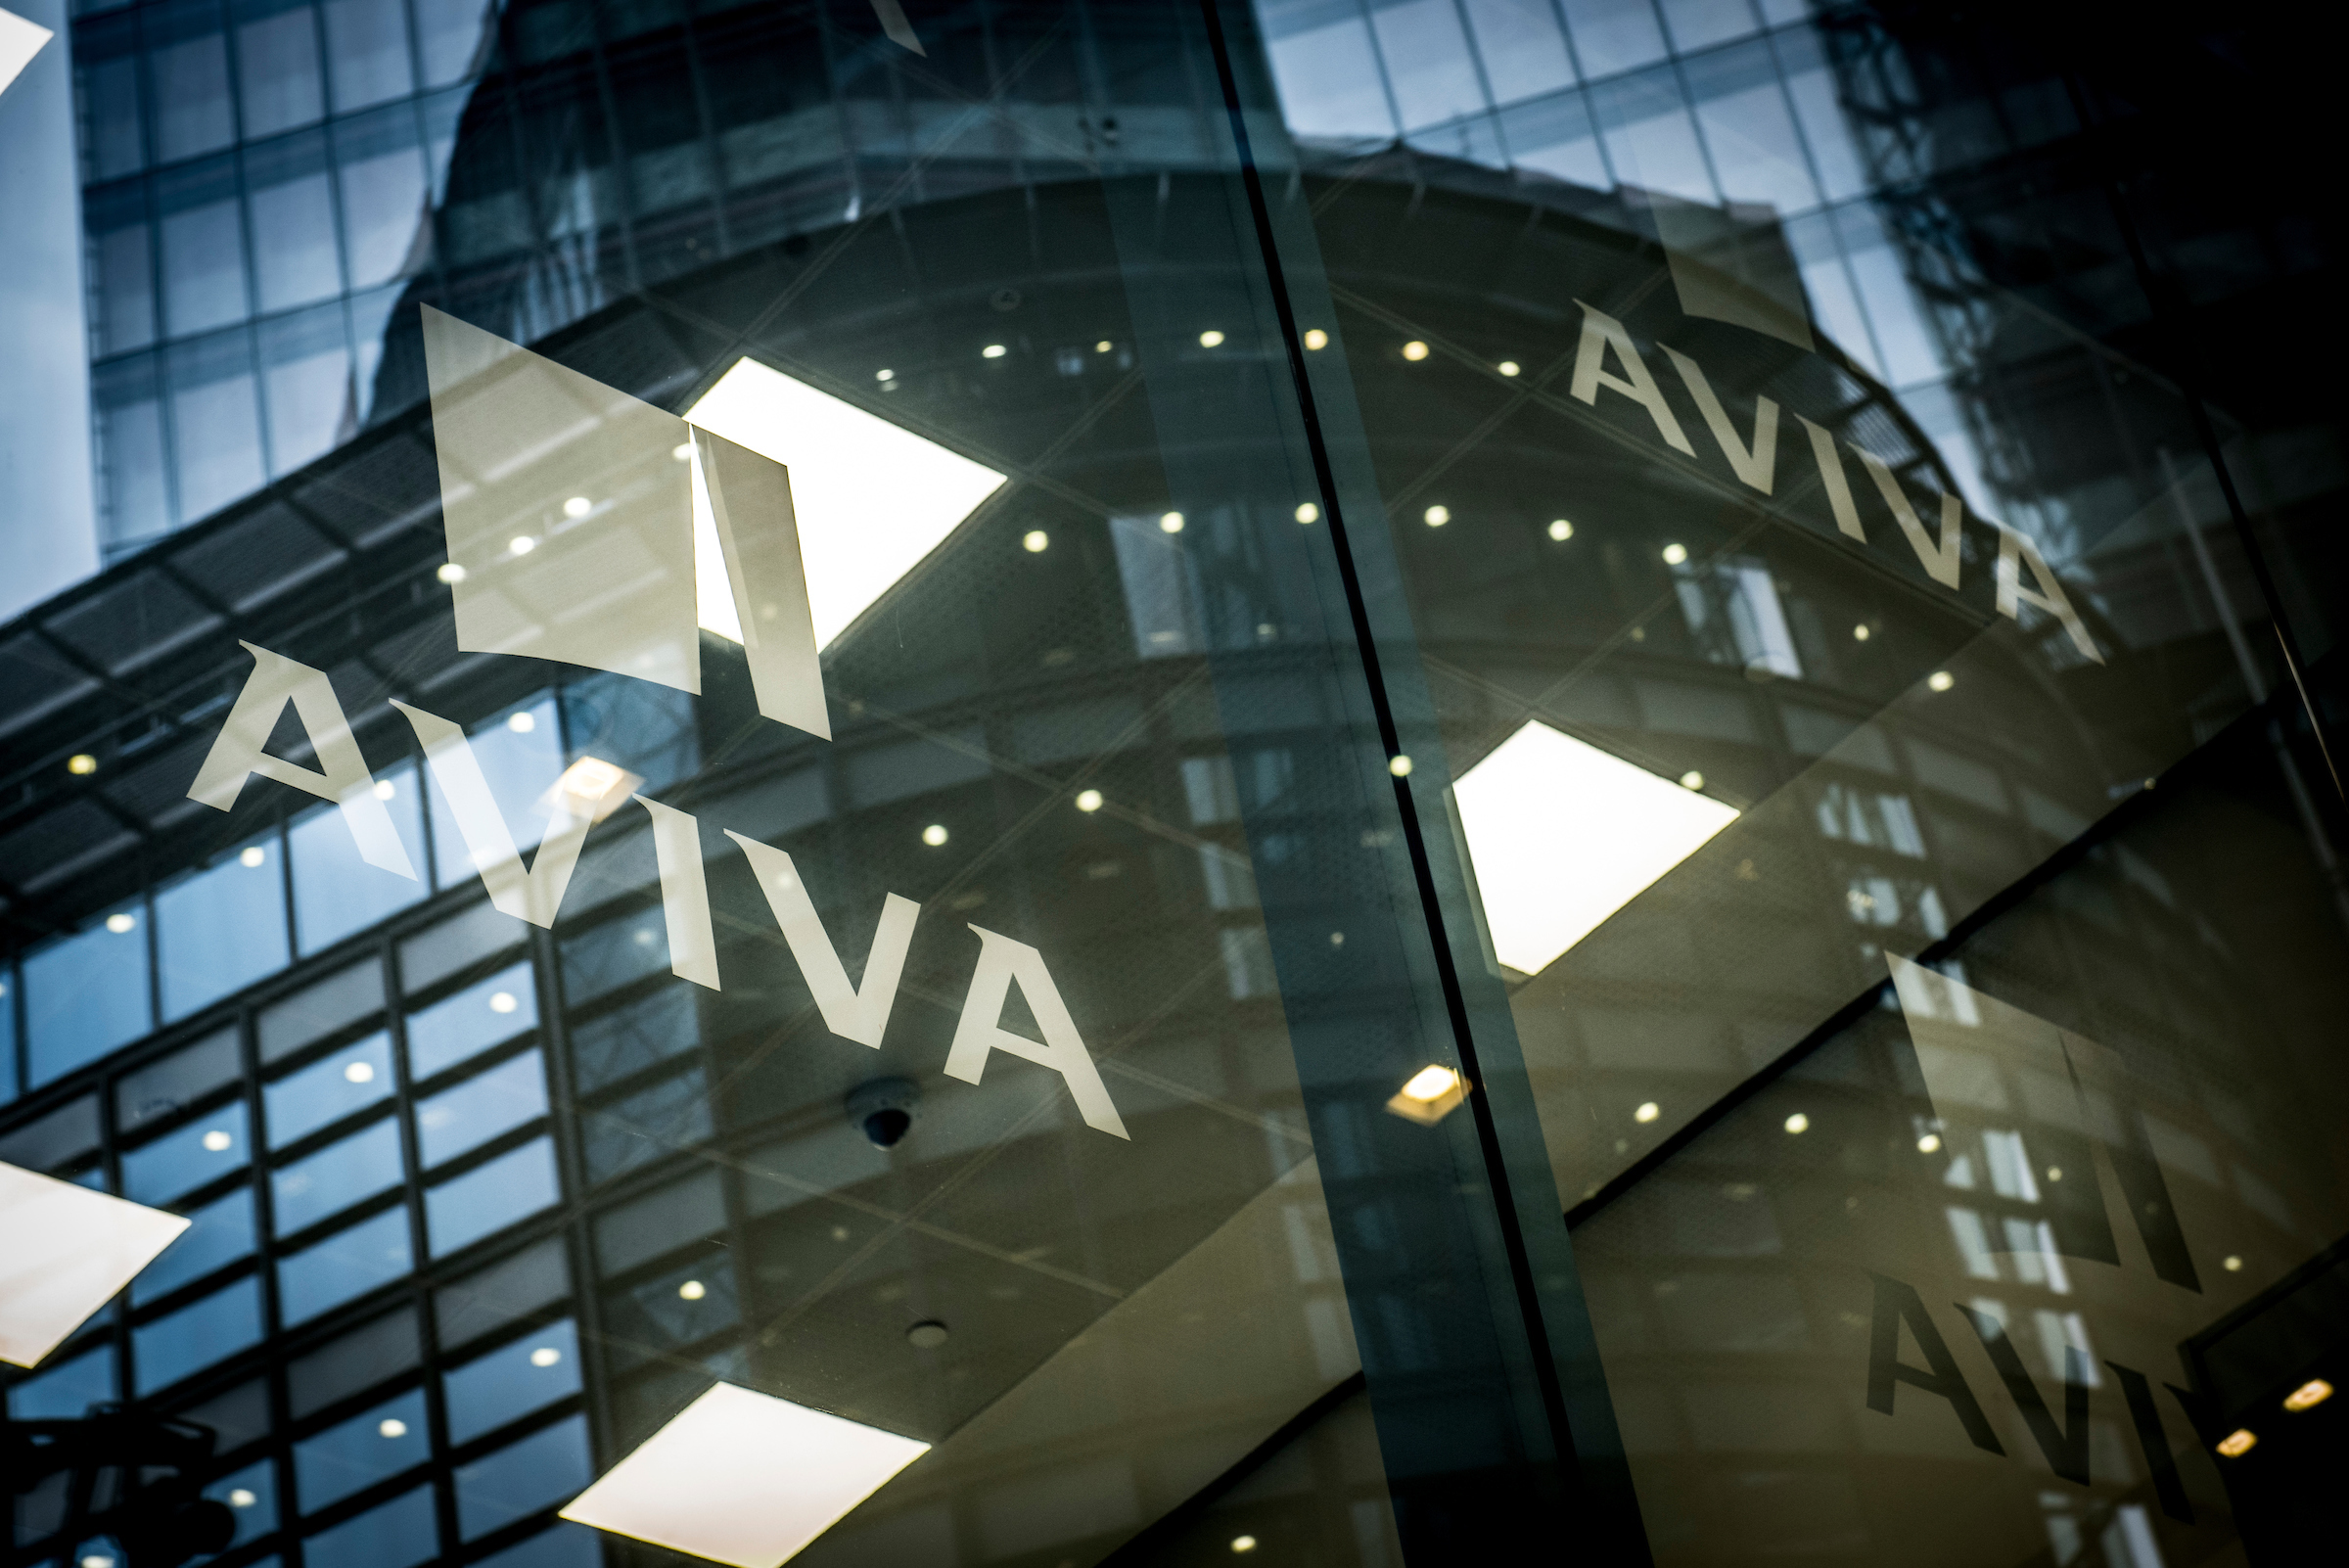 Reflection of Aviva logo in glass buildings